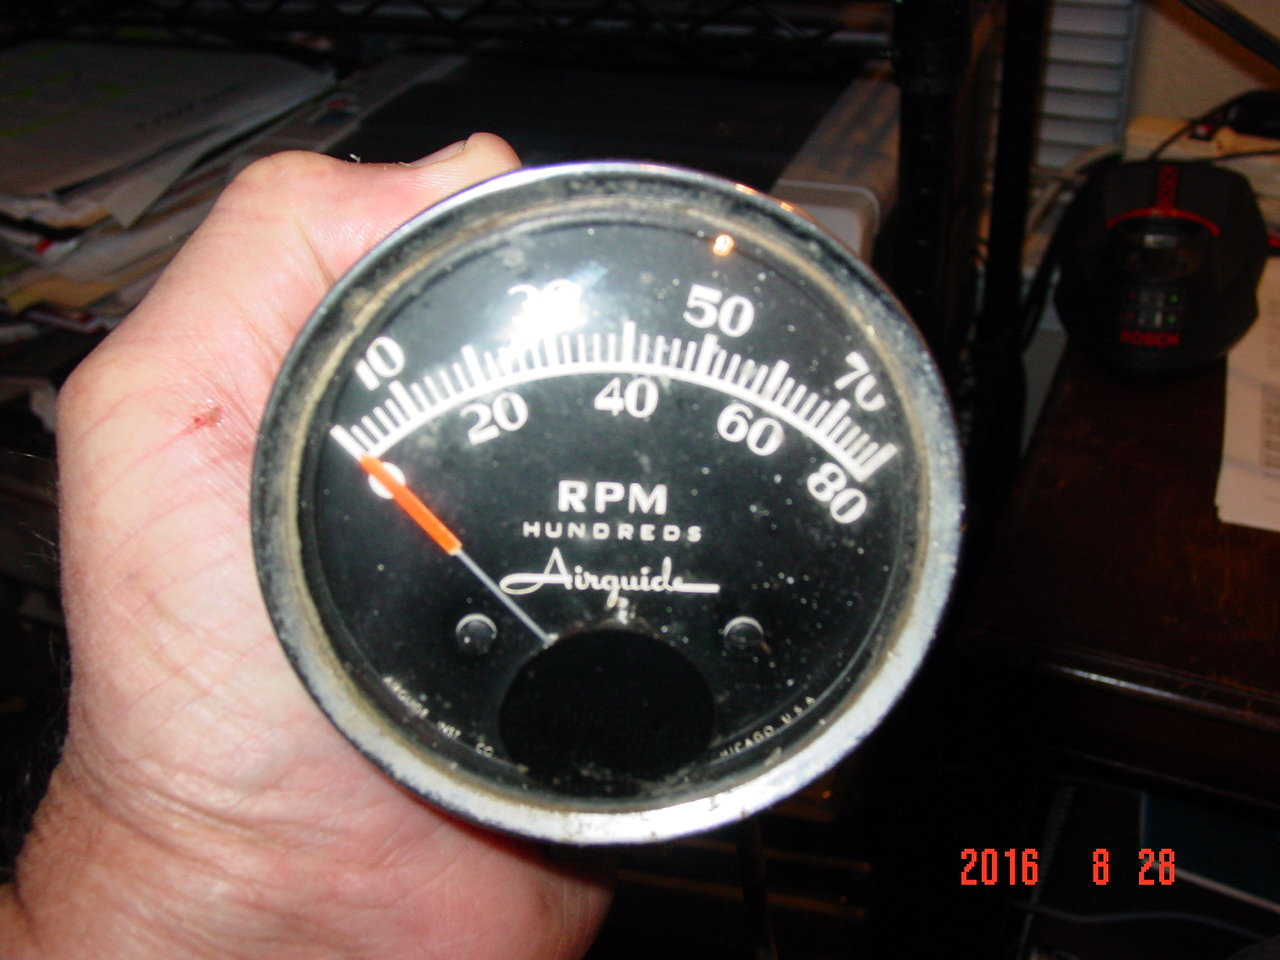 Anyone using an Airguide Tach? - Ford Truck Enthusiasts Forums on